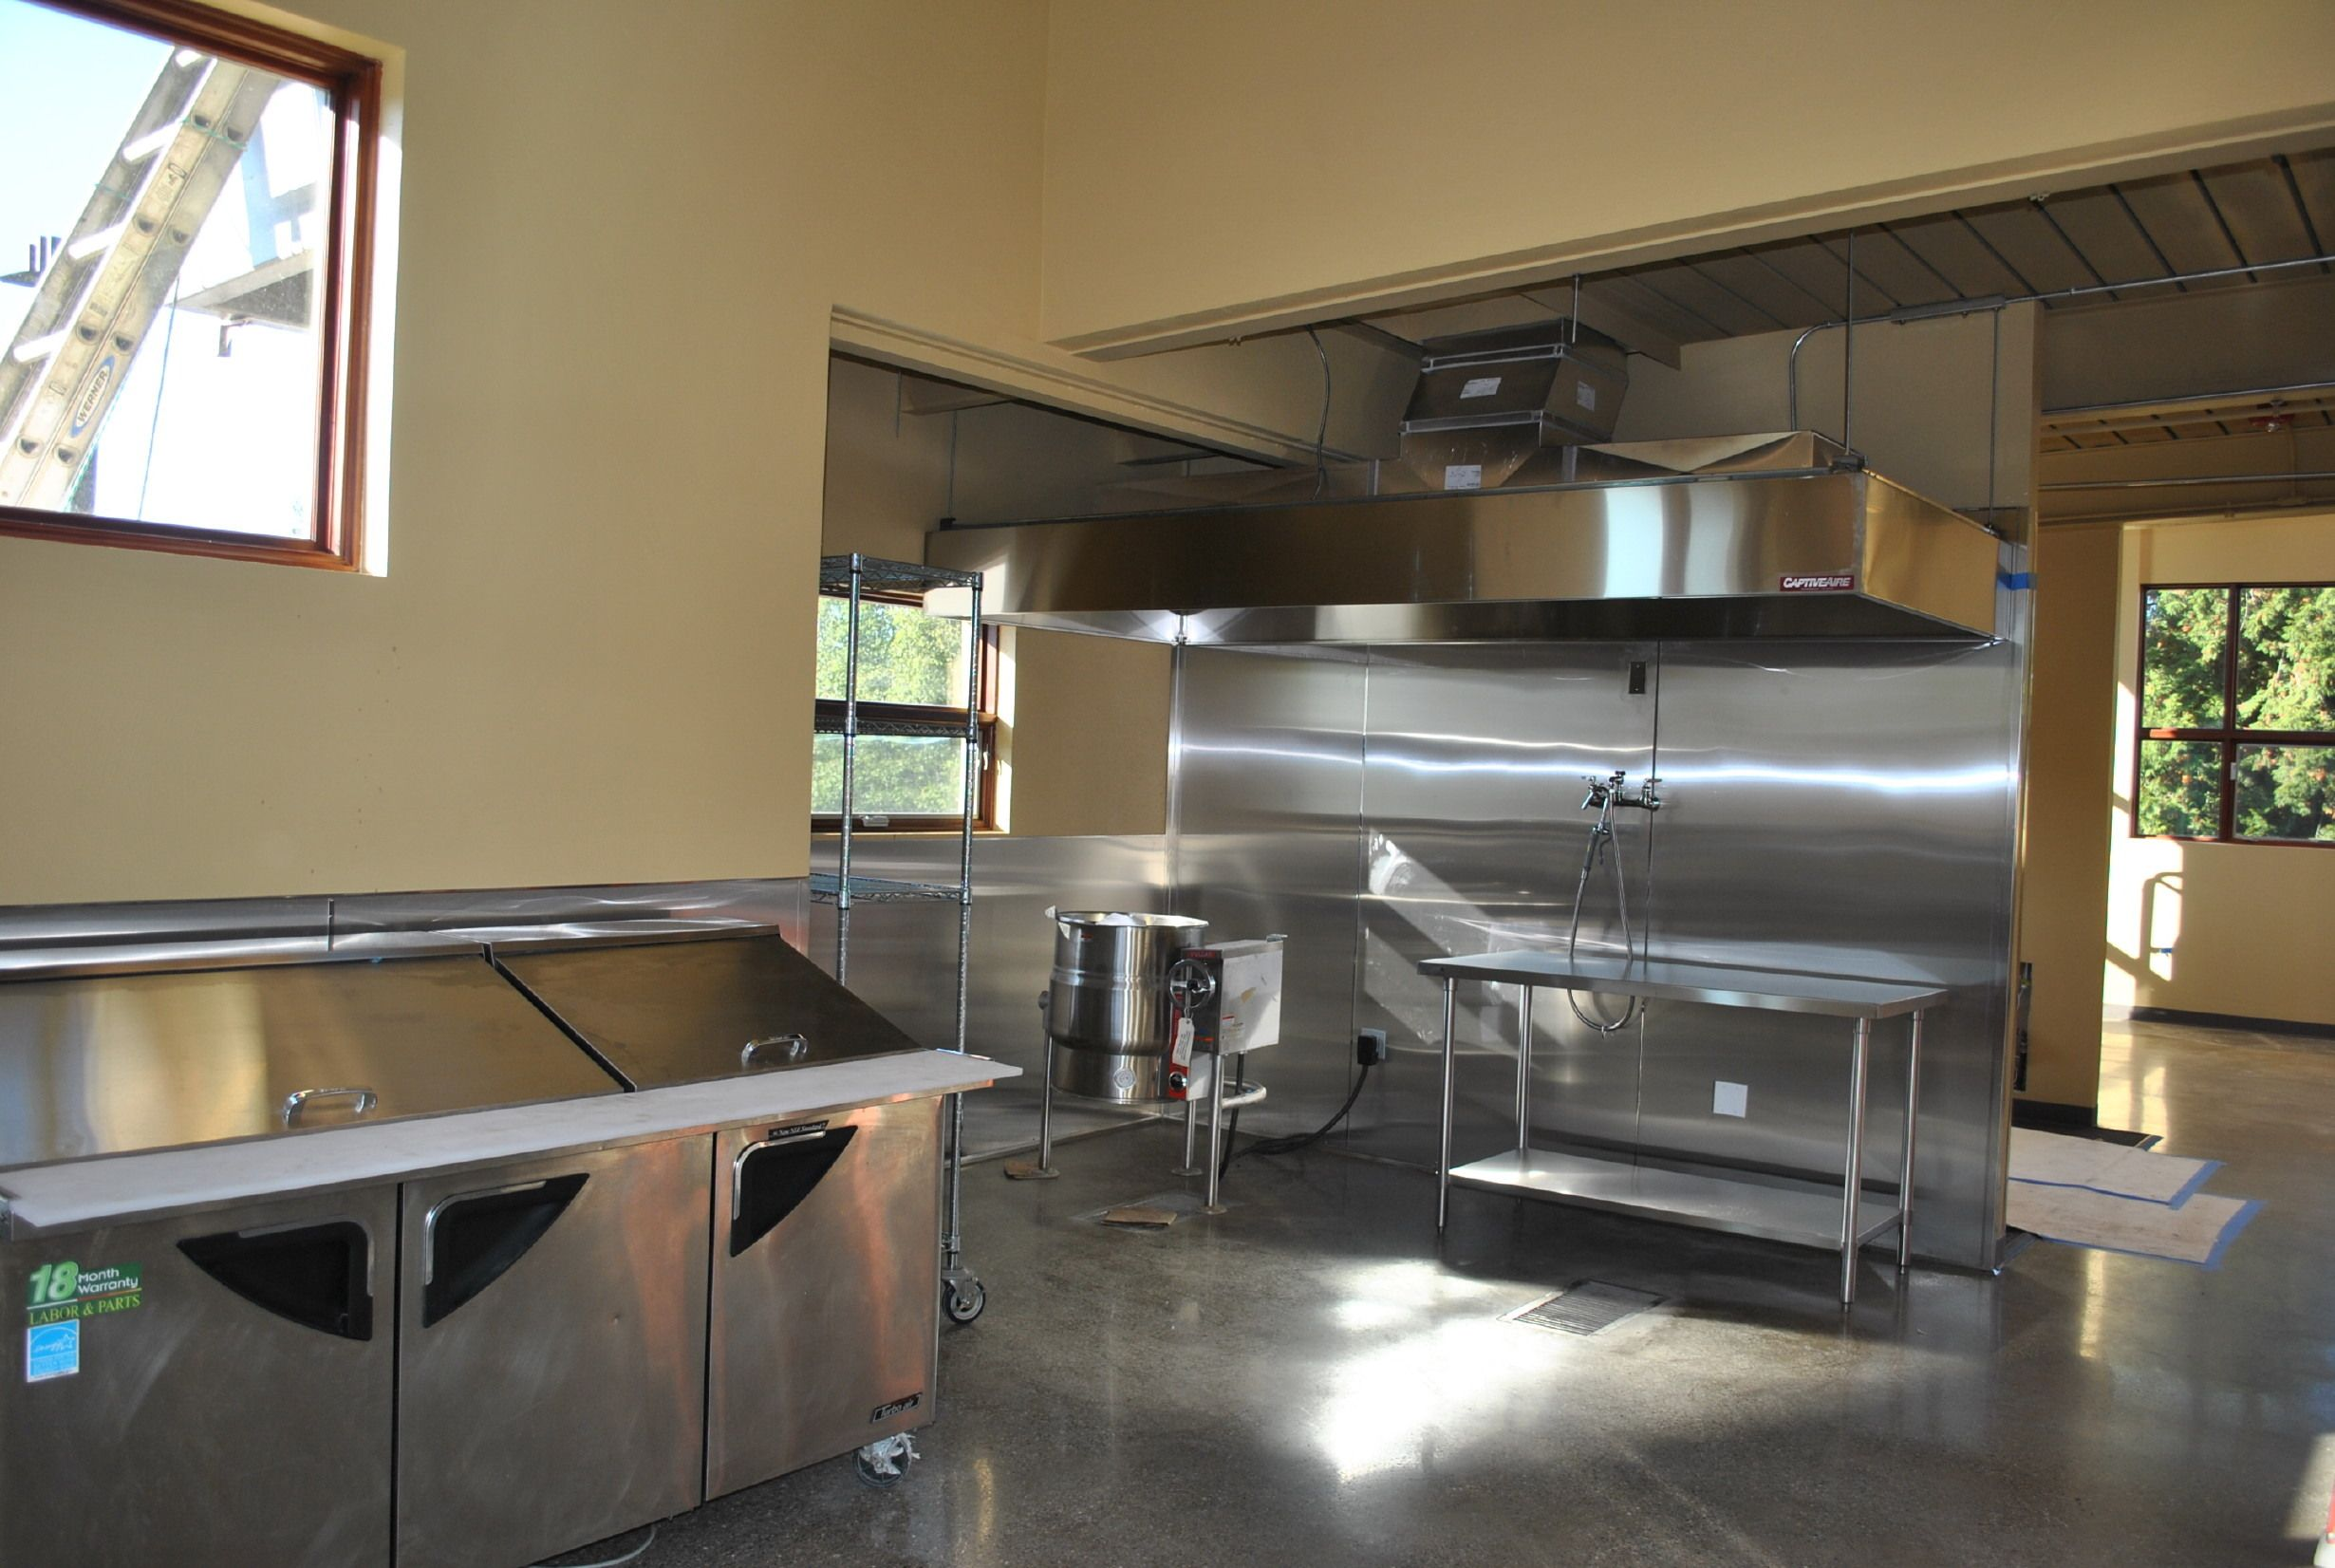 Uncategorized Kitchen Design Business 100 open kitchen restaurant design east west and harmony at furniture fascinating small with